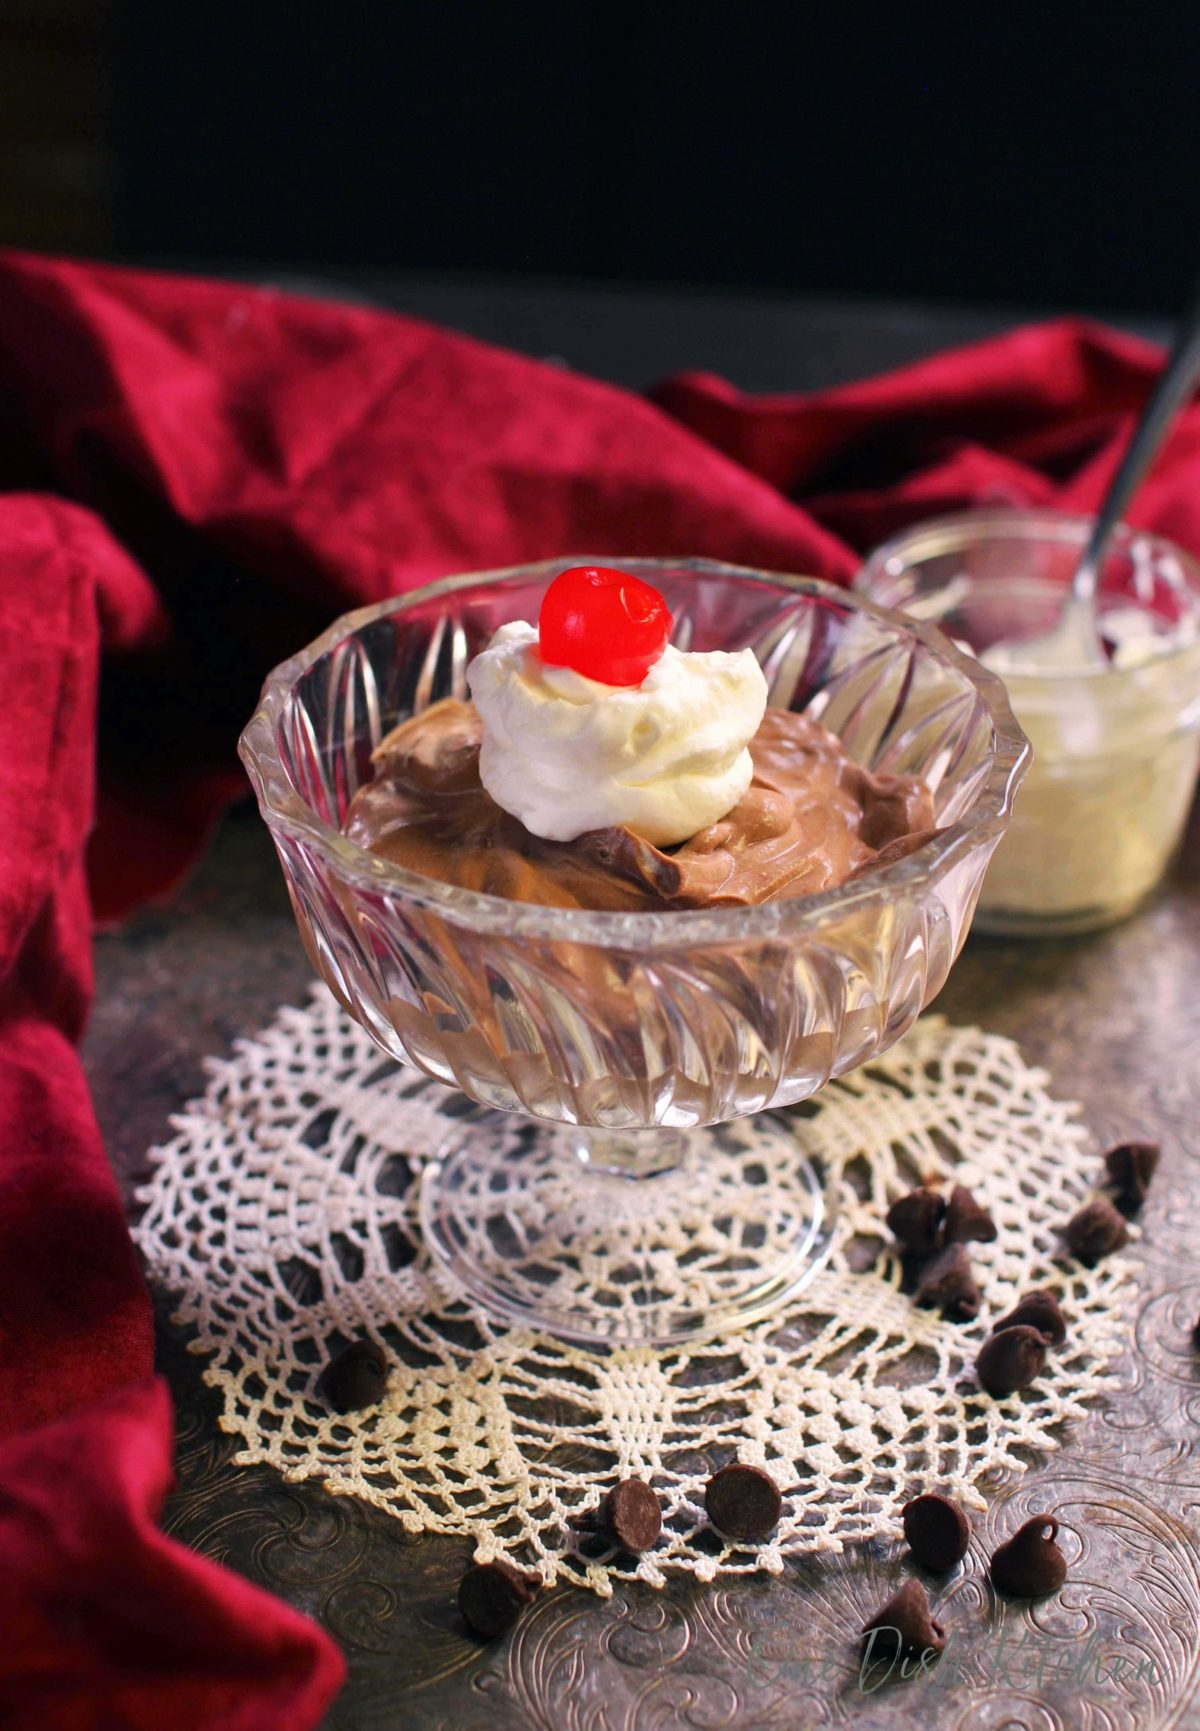 a bowl of chocolate mousse topped with whipped cream and a cherry on a tray next to a red napkin.